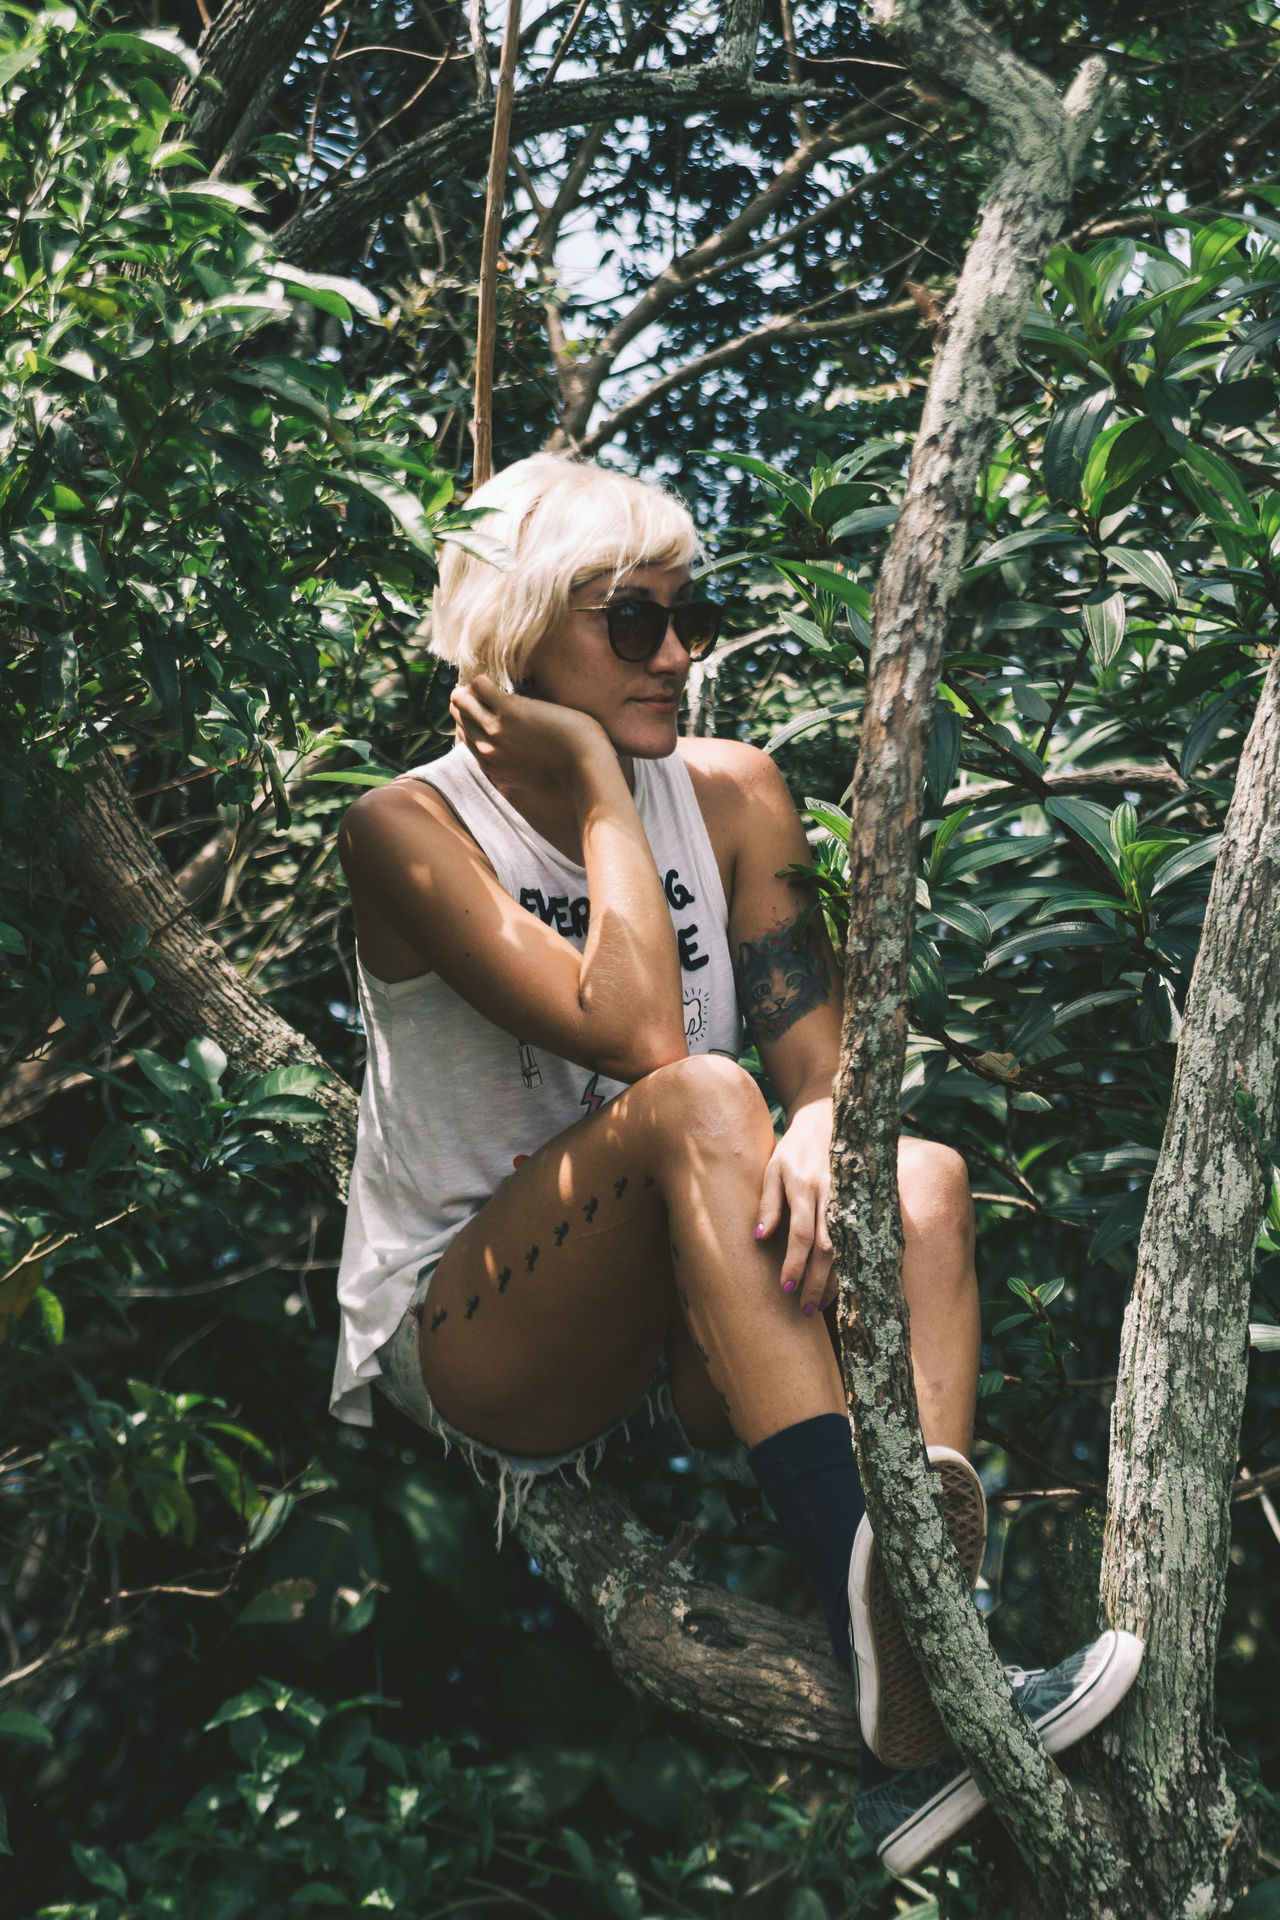 Agnes hanging out in the trees on top of Dois Irmaos. Blond Hair Climbing Day Forest Girl Jungle Leisure Activity Lifestyle Lifestyles Nature One Person Outdoors People Portrait Portrait Of A Woman Portrait Photography Pose Real People Shades Sunglasses The Portraitist - 2017 EyeEm Awards Tree Woman Young Adult Young Women Live For The Story